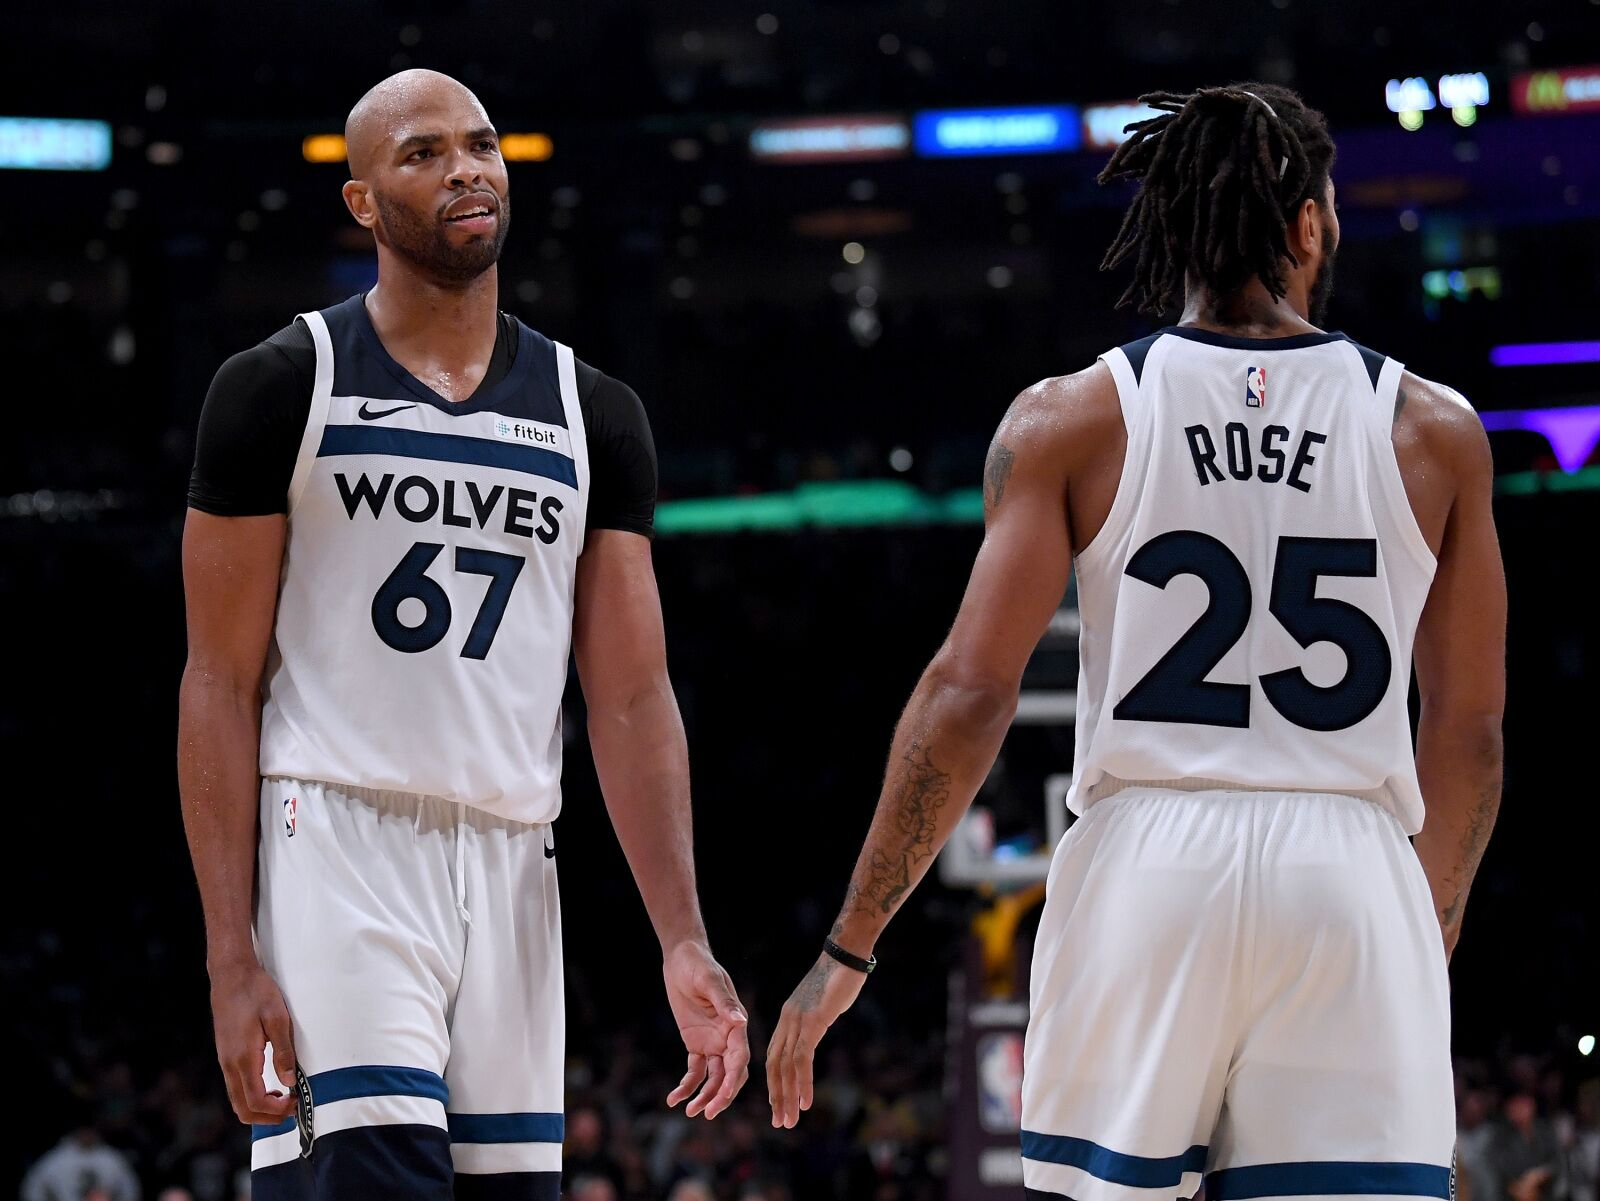 6a63ef2c79b1 Minnesota Timberwolves  How Thibodeau s firing affects Rose and Gibson